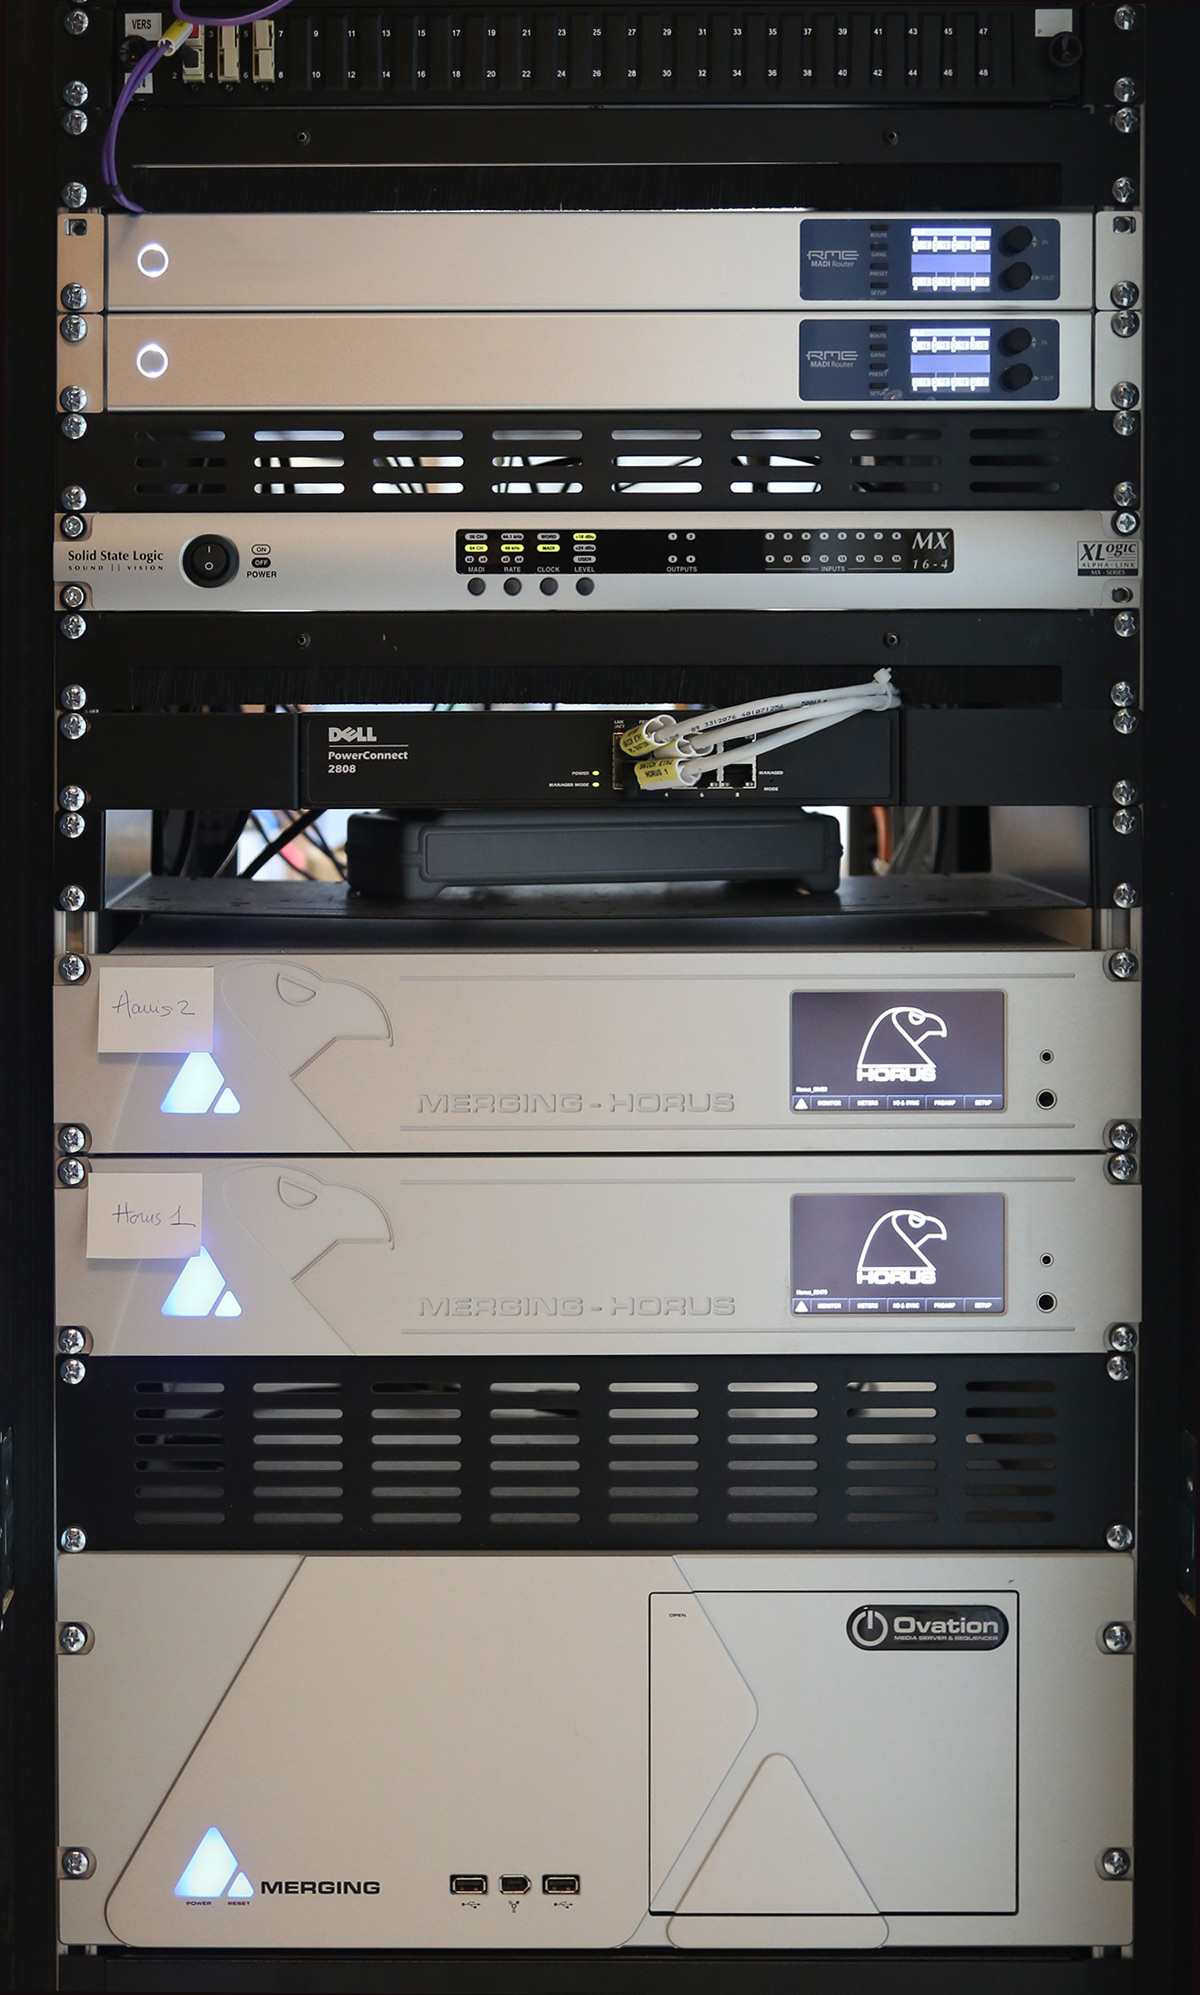 Ovation & Horus rack at La Grande Gallerie de l'Evolution, Paris